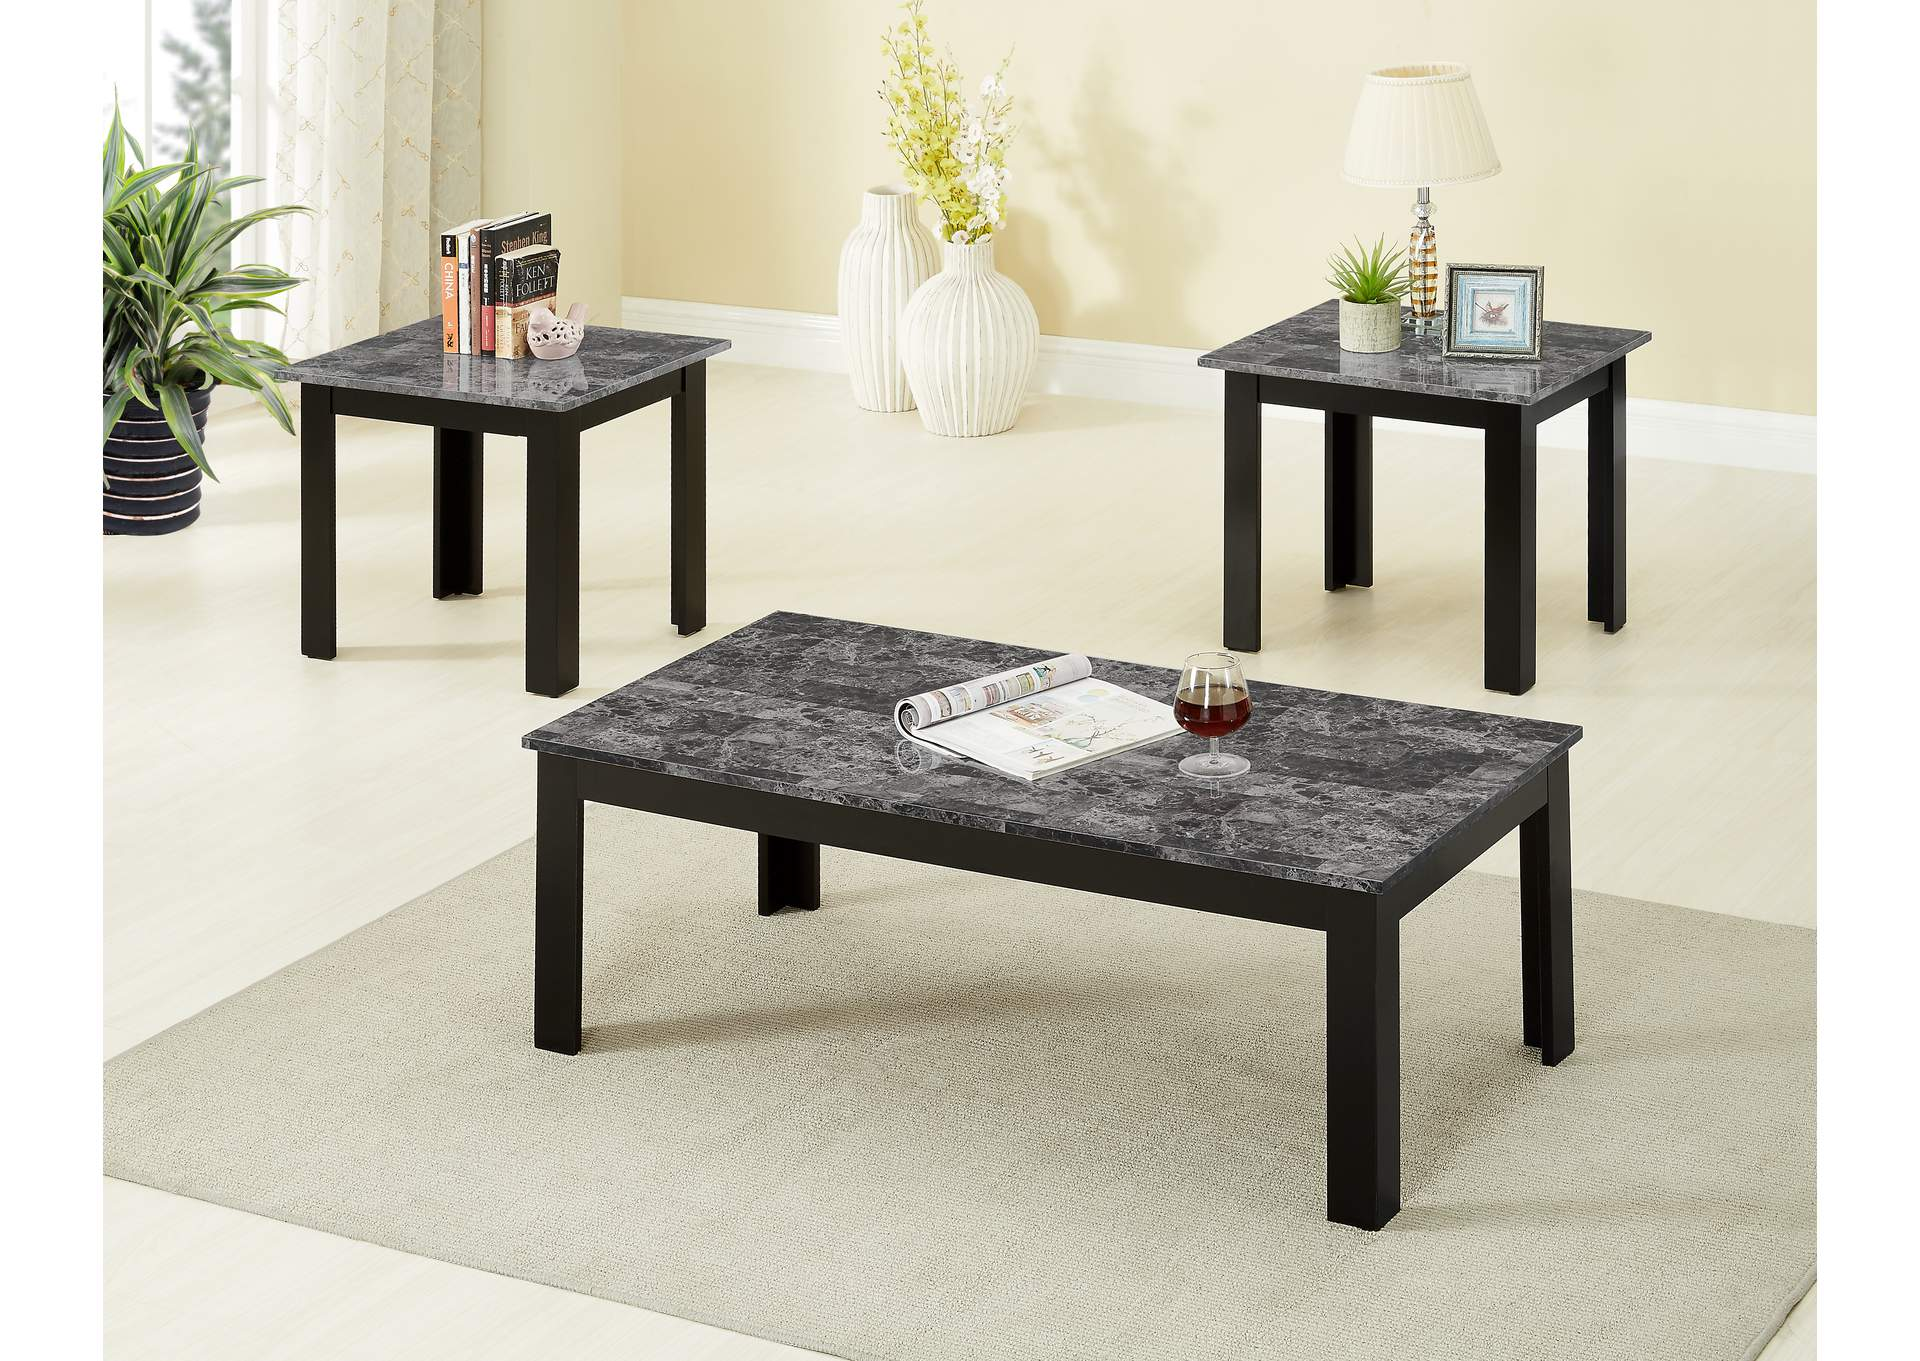 3 Piece Espresso Faux Marble Top Coffee End Table SetGlobal Trading & Council\u0027s Furniture 3 Piece Espresso Faux Marble Top Coffee End ...